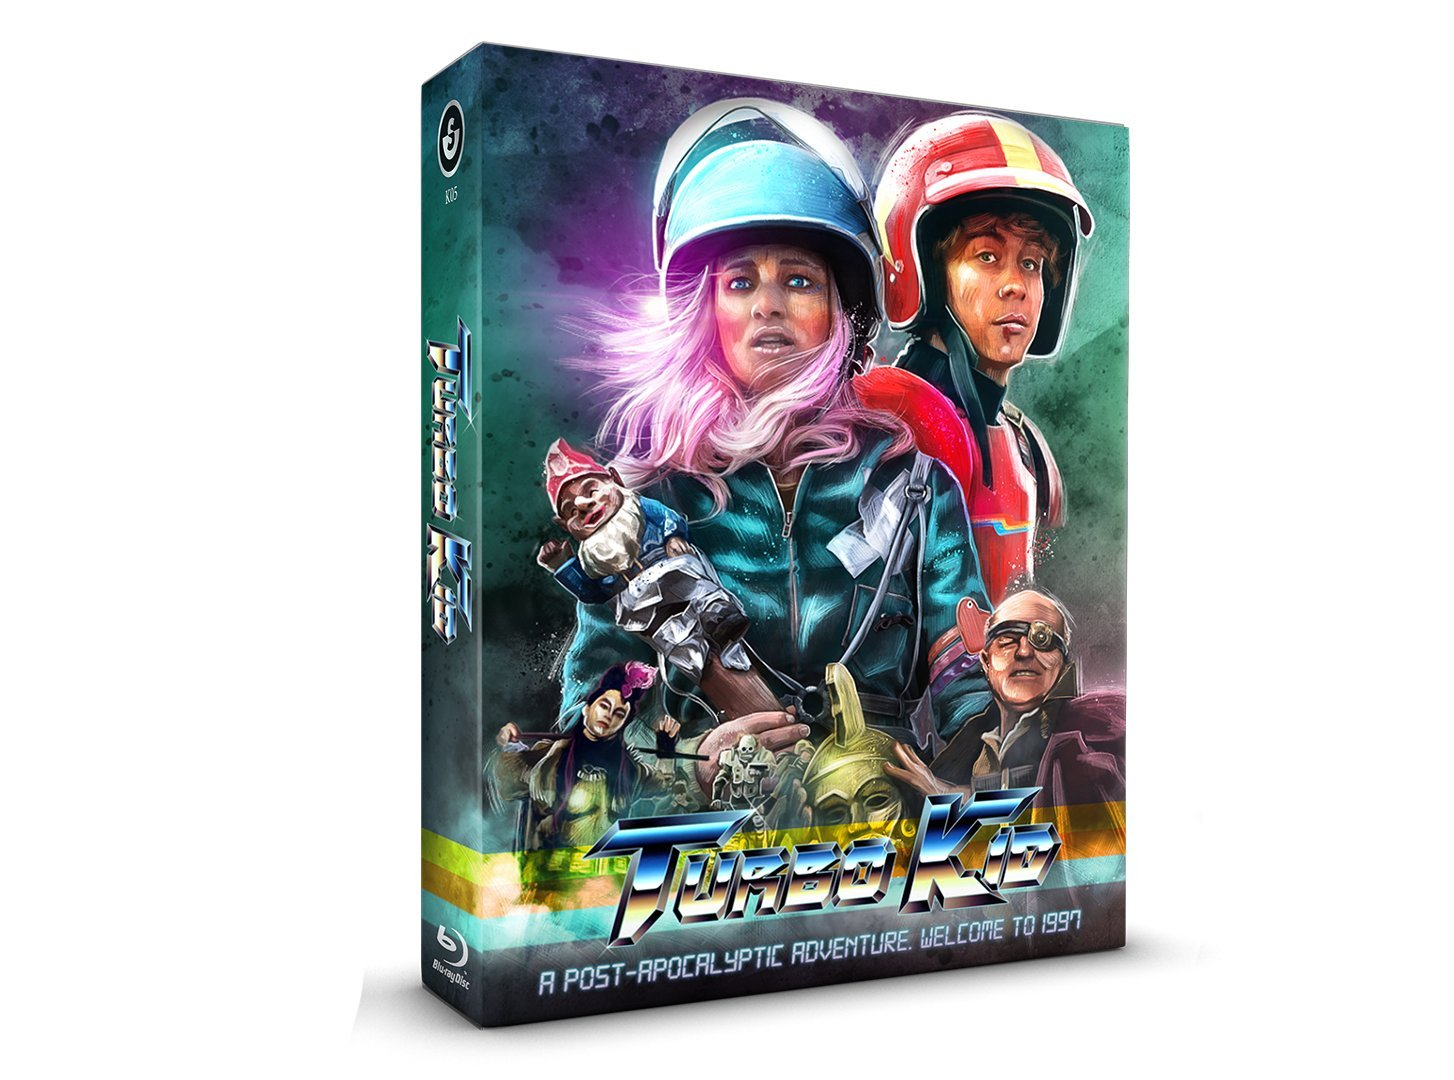 Turbo Kid Full Slip Limited Edition Blu-ray E2 Alemania: Amazon.es: Munro Chambers, Laurence Leboeuf, Michael Ironside, Francois Simard, Anouk Whissell, ...